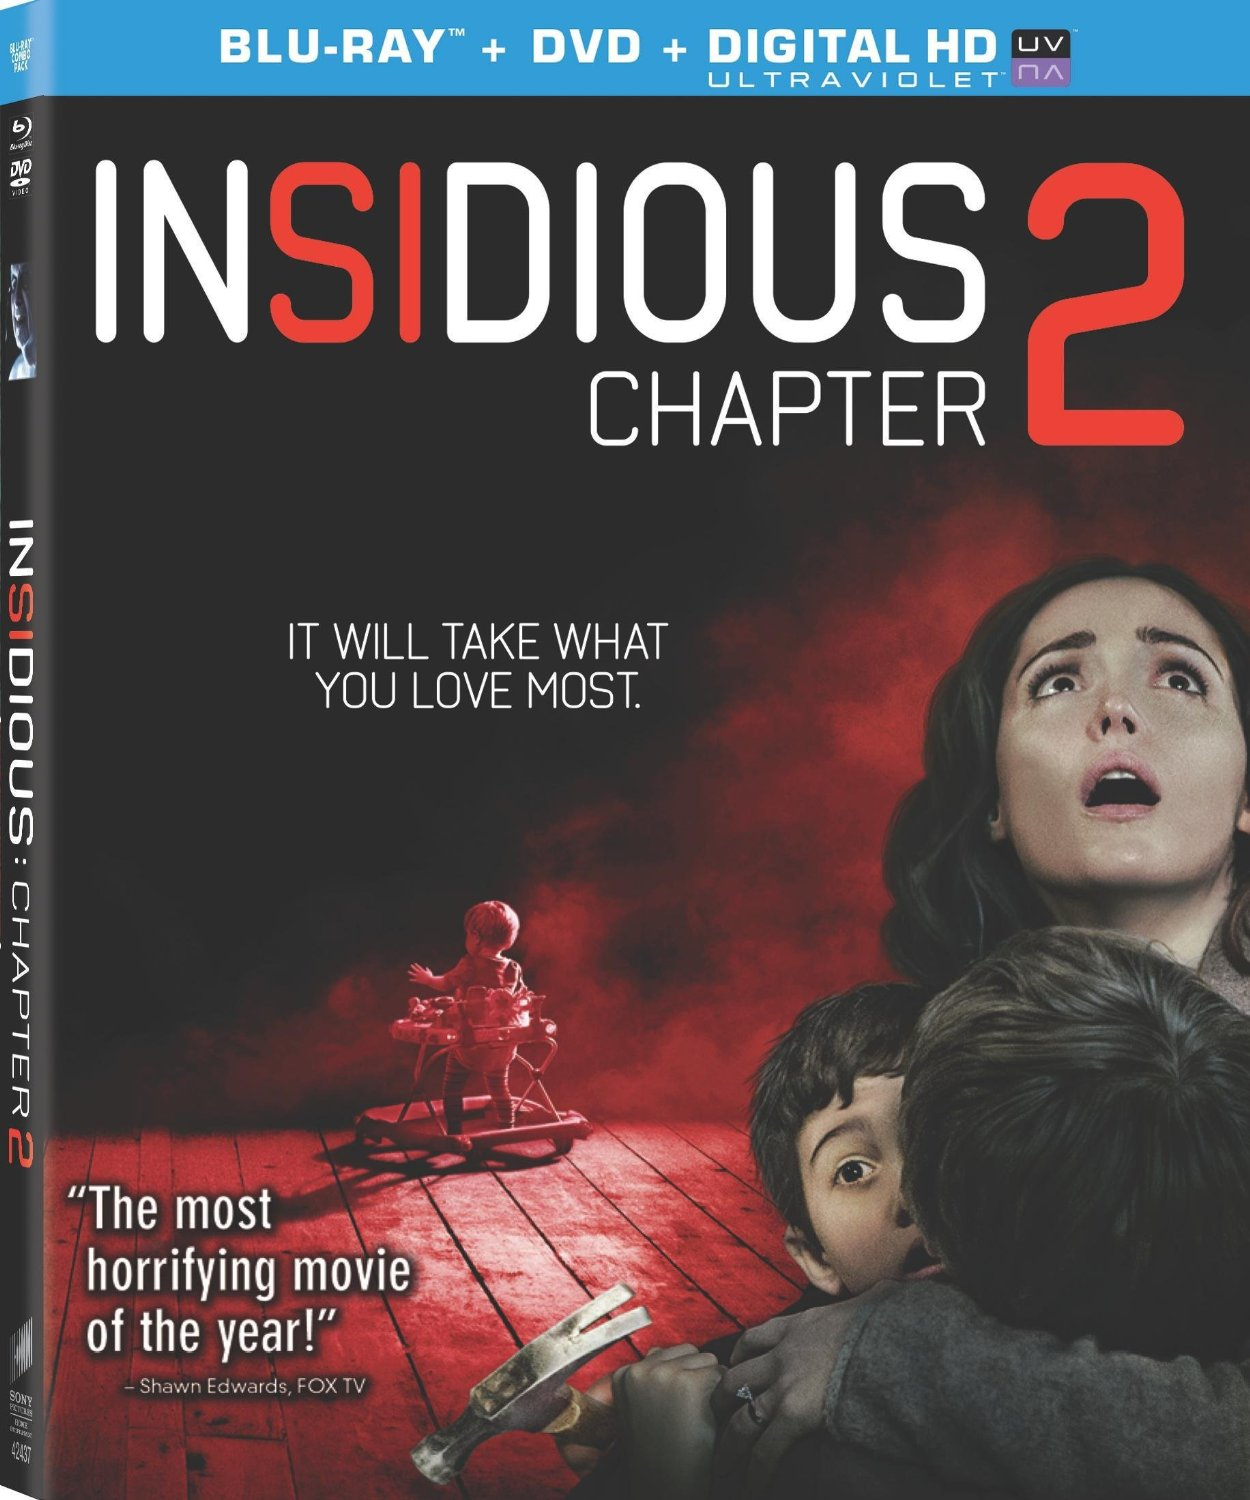 Insidious Chapter 2 Blu-ray Review